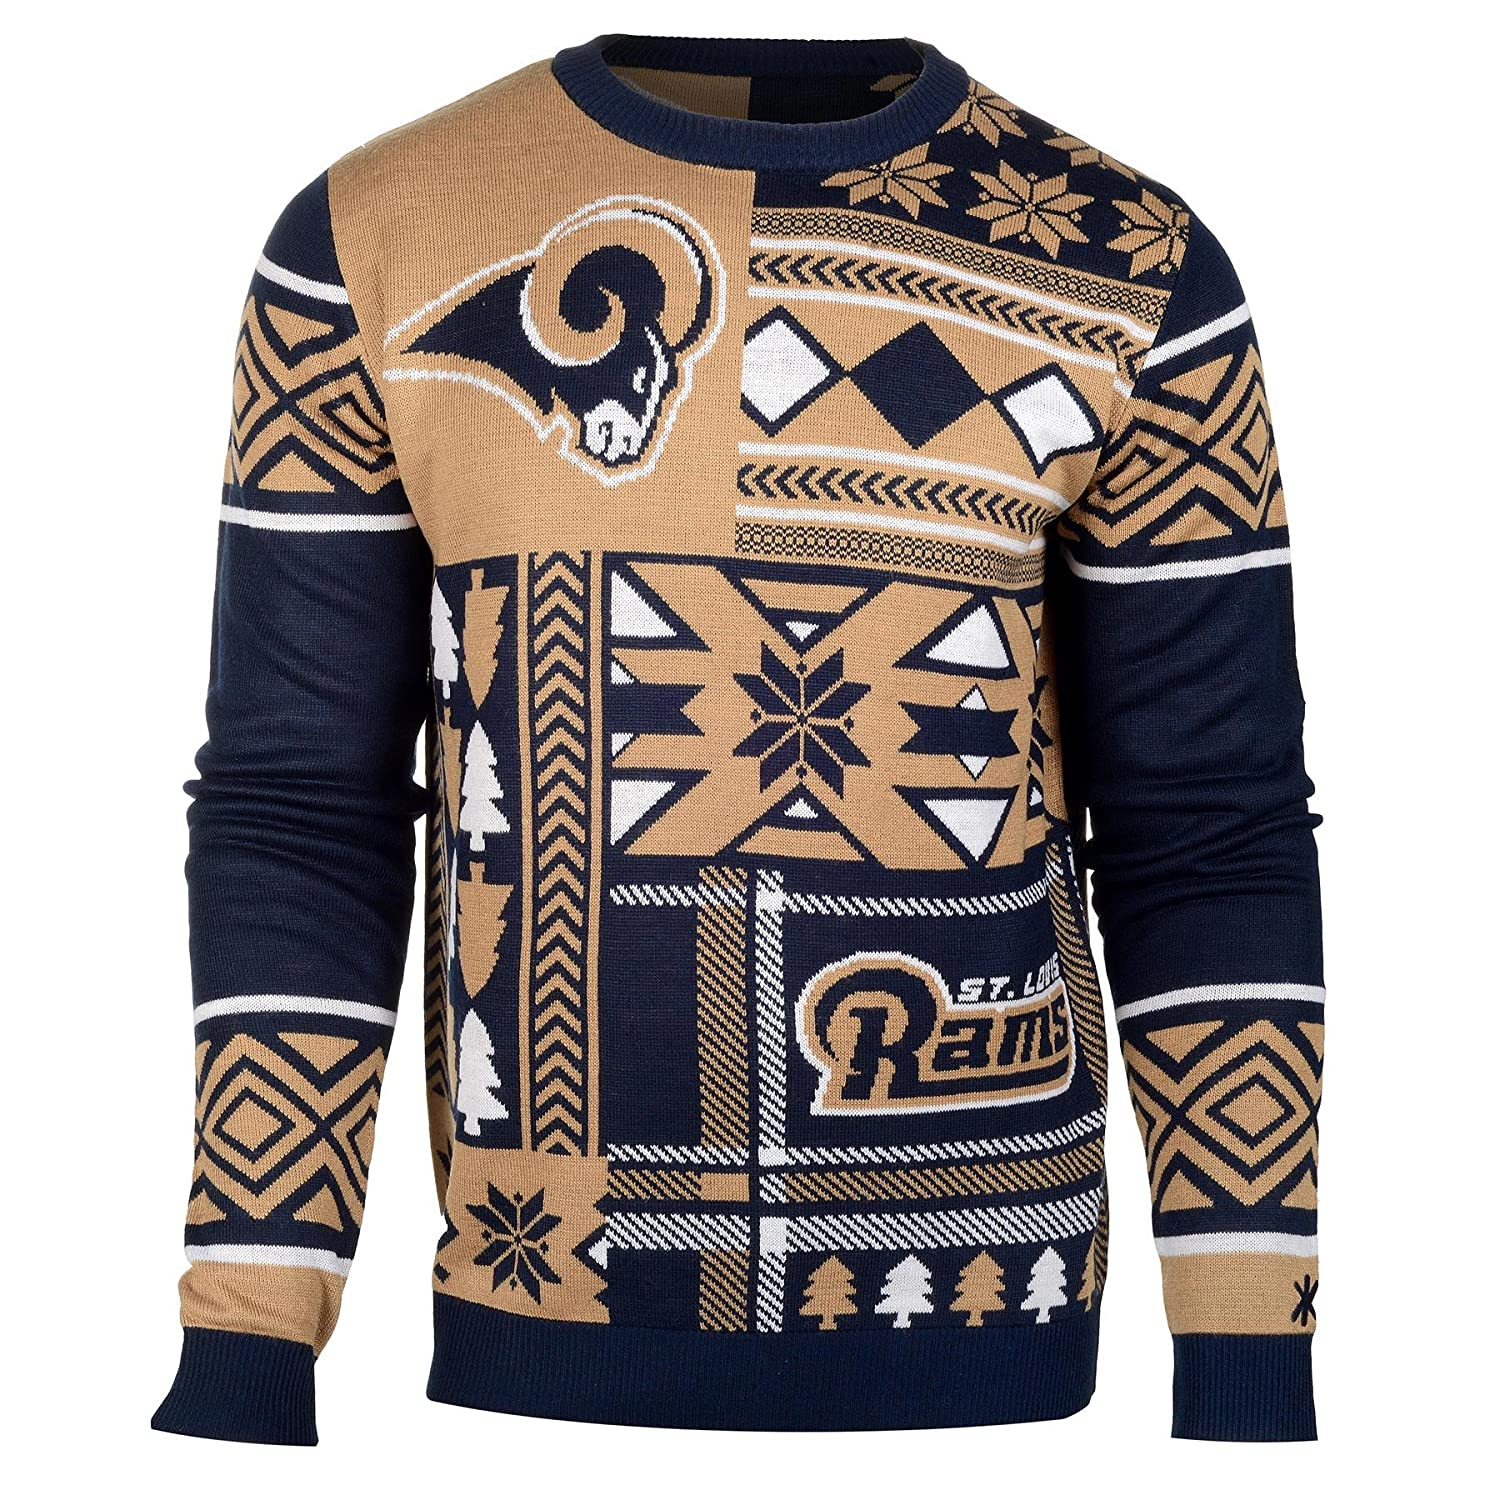 Amazon.com : FOCO NFL Patches Ugly Sweater- Pick Team! : Sports ...